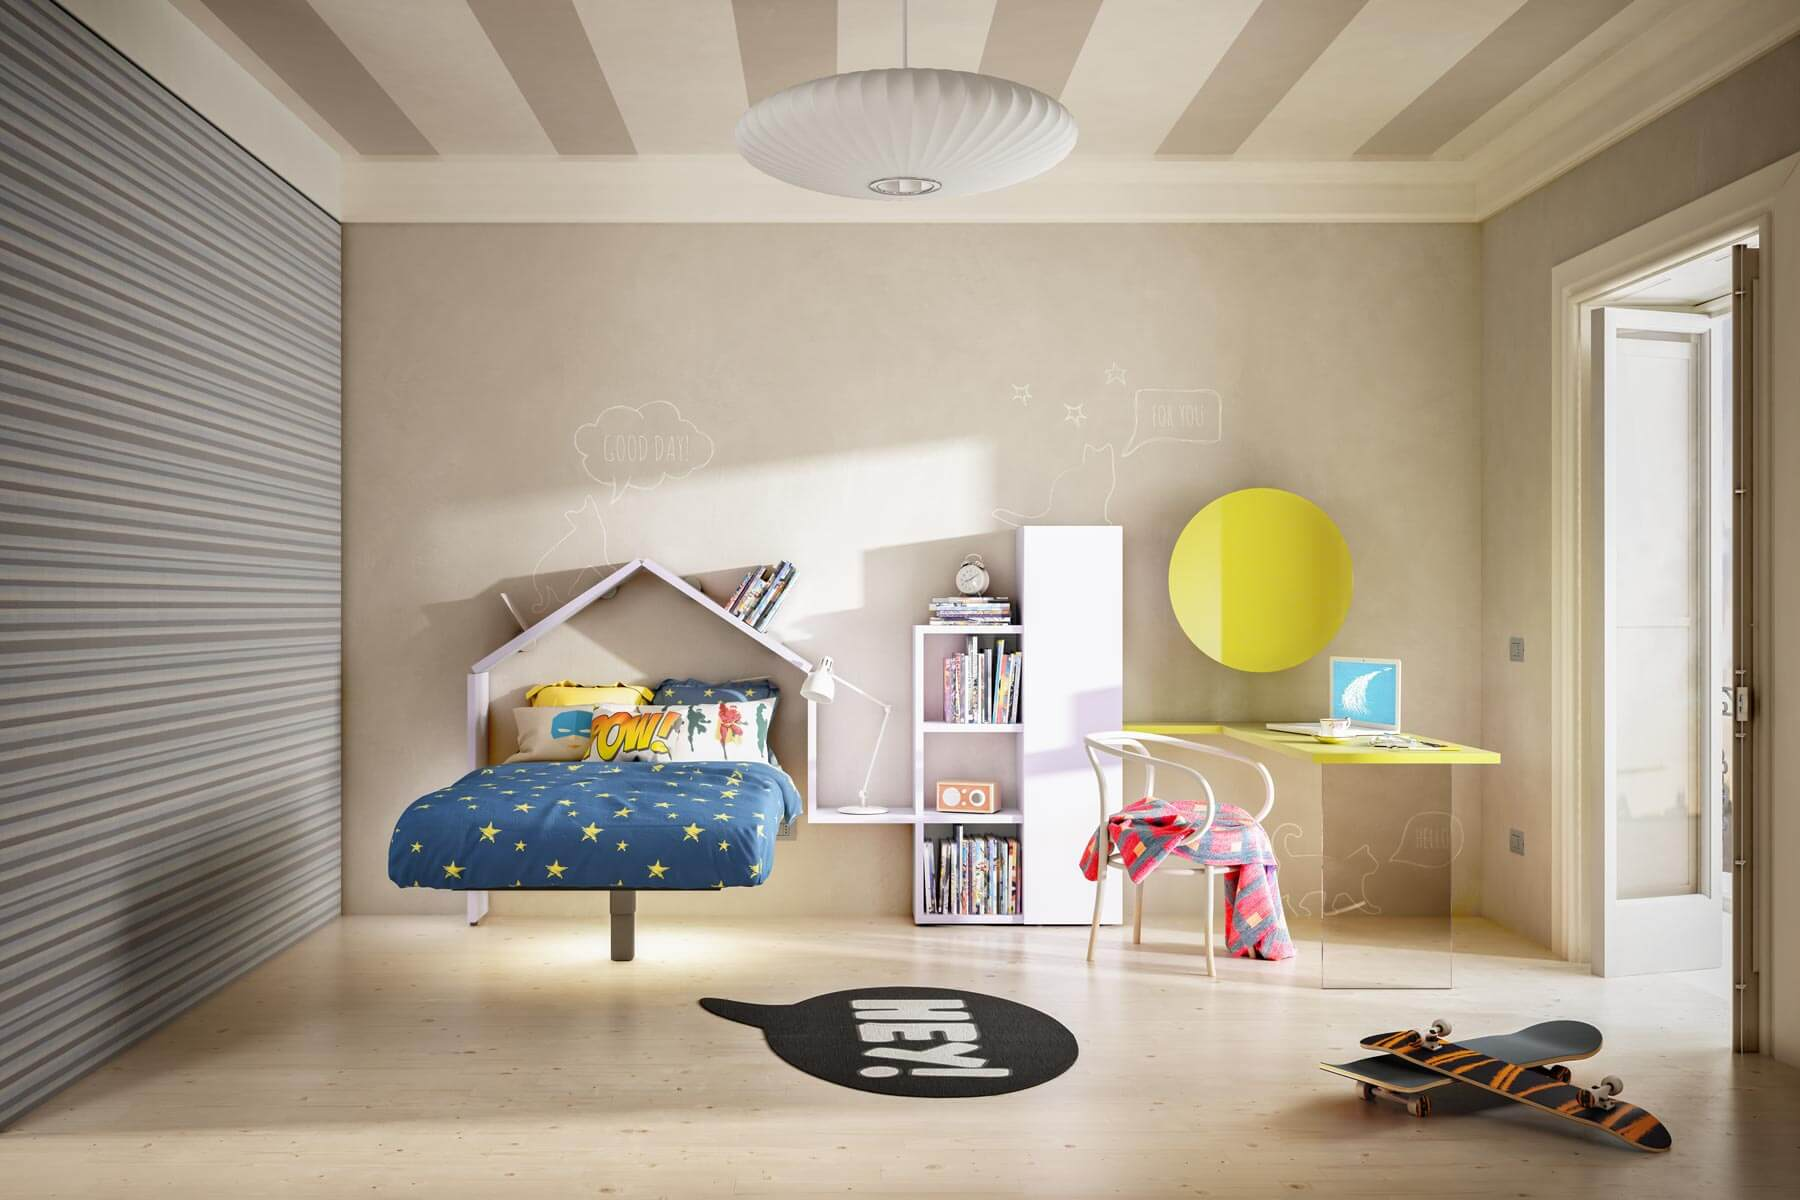 Bed with Storage 36e8 kids